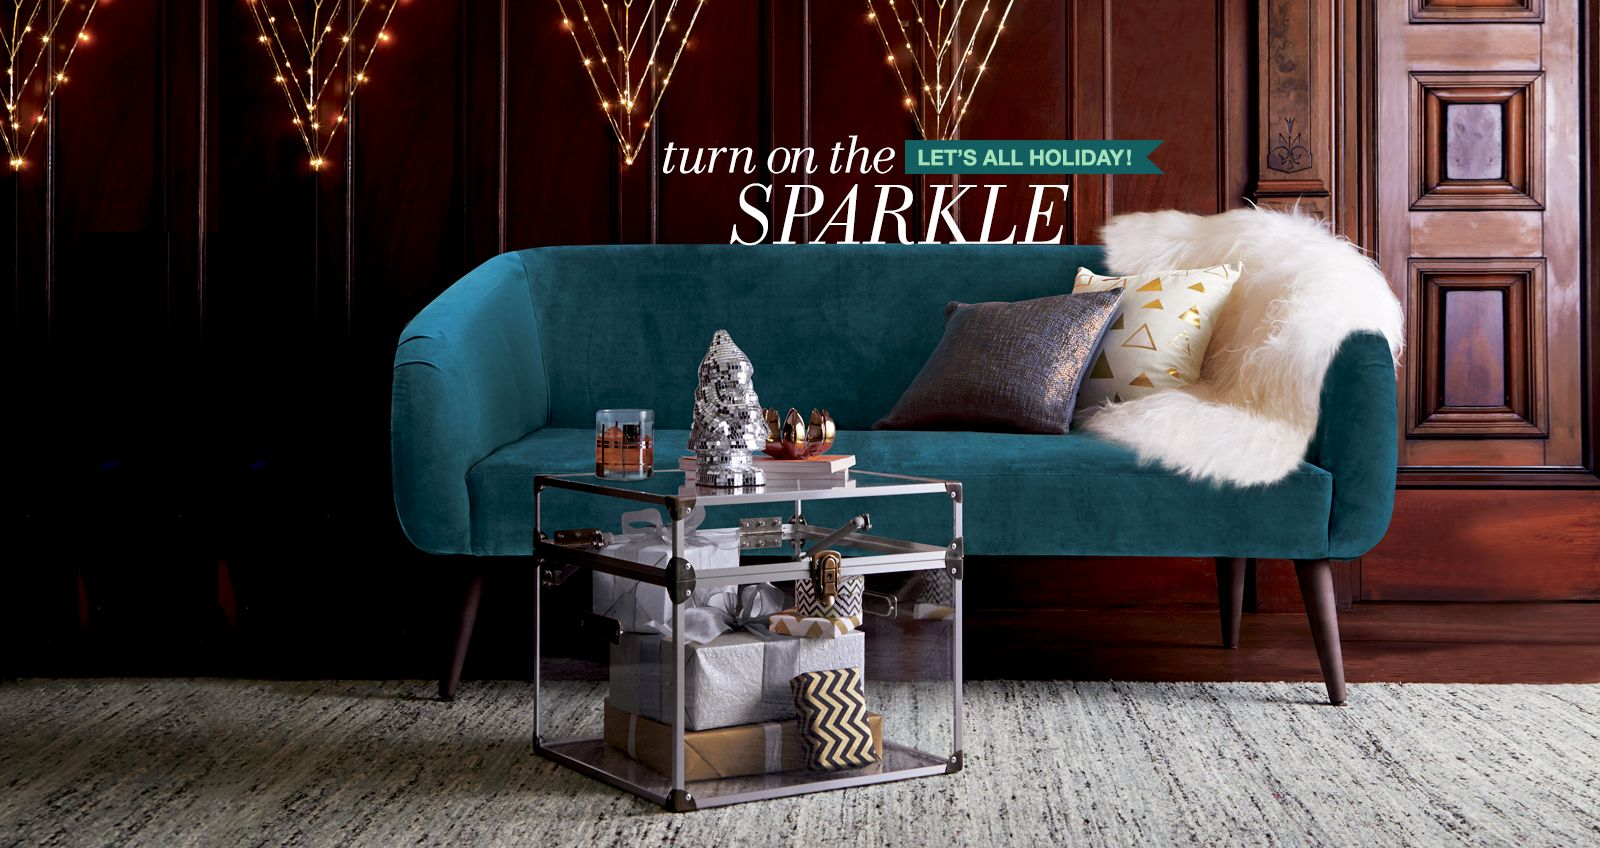 Let's all holiday! turn on the sparkle